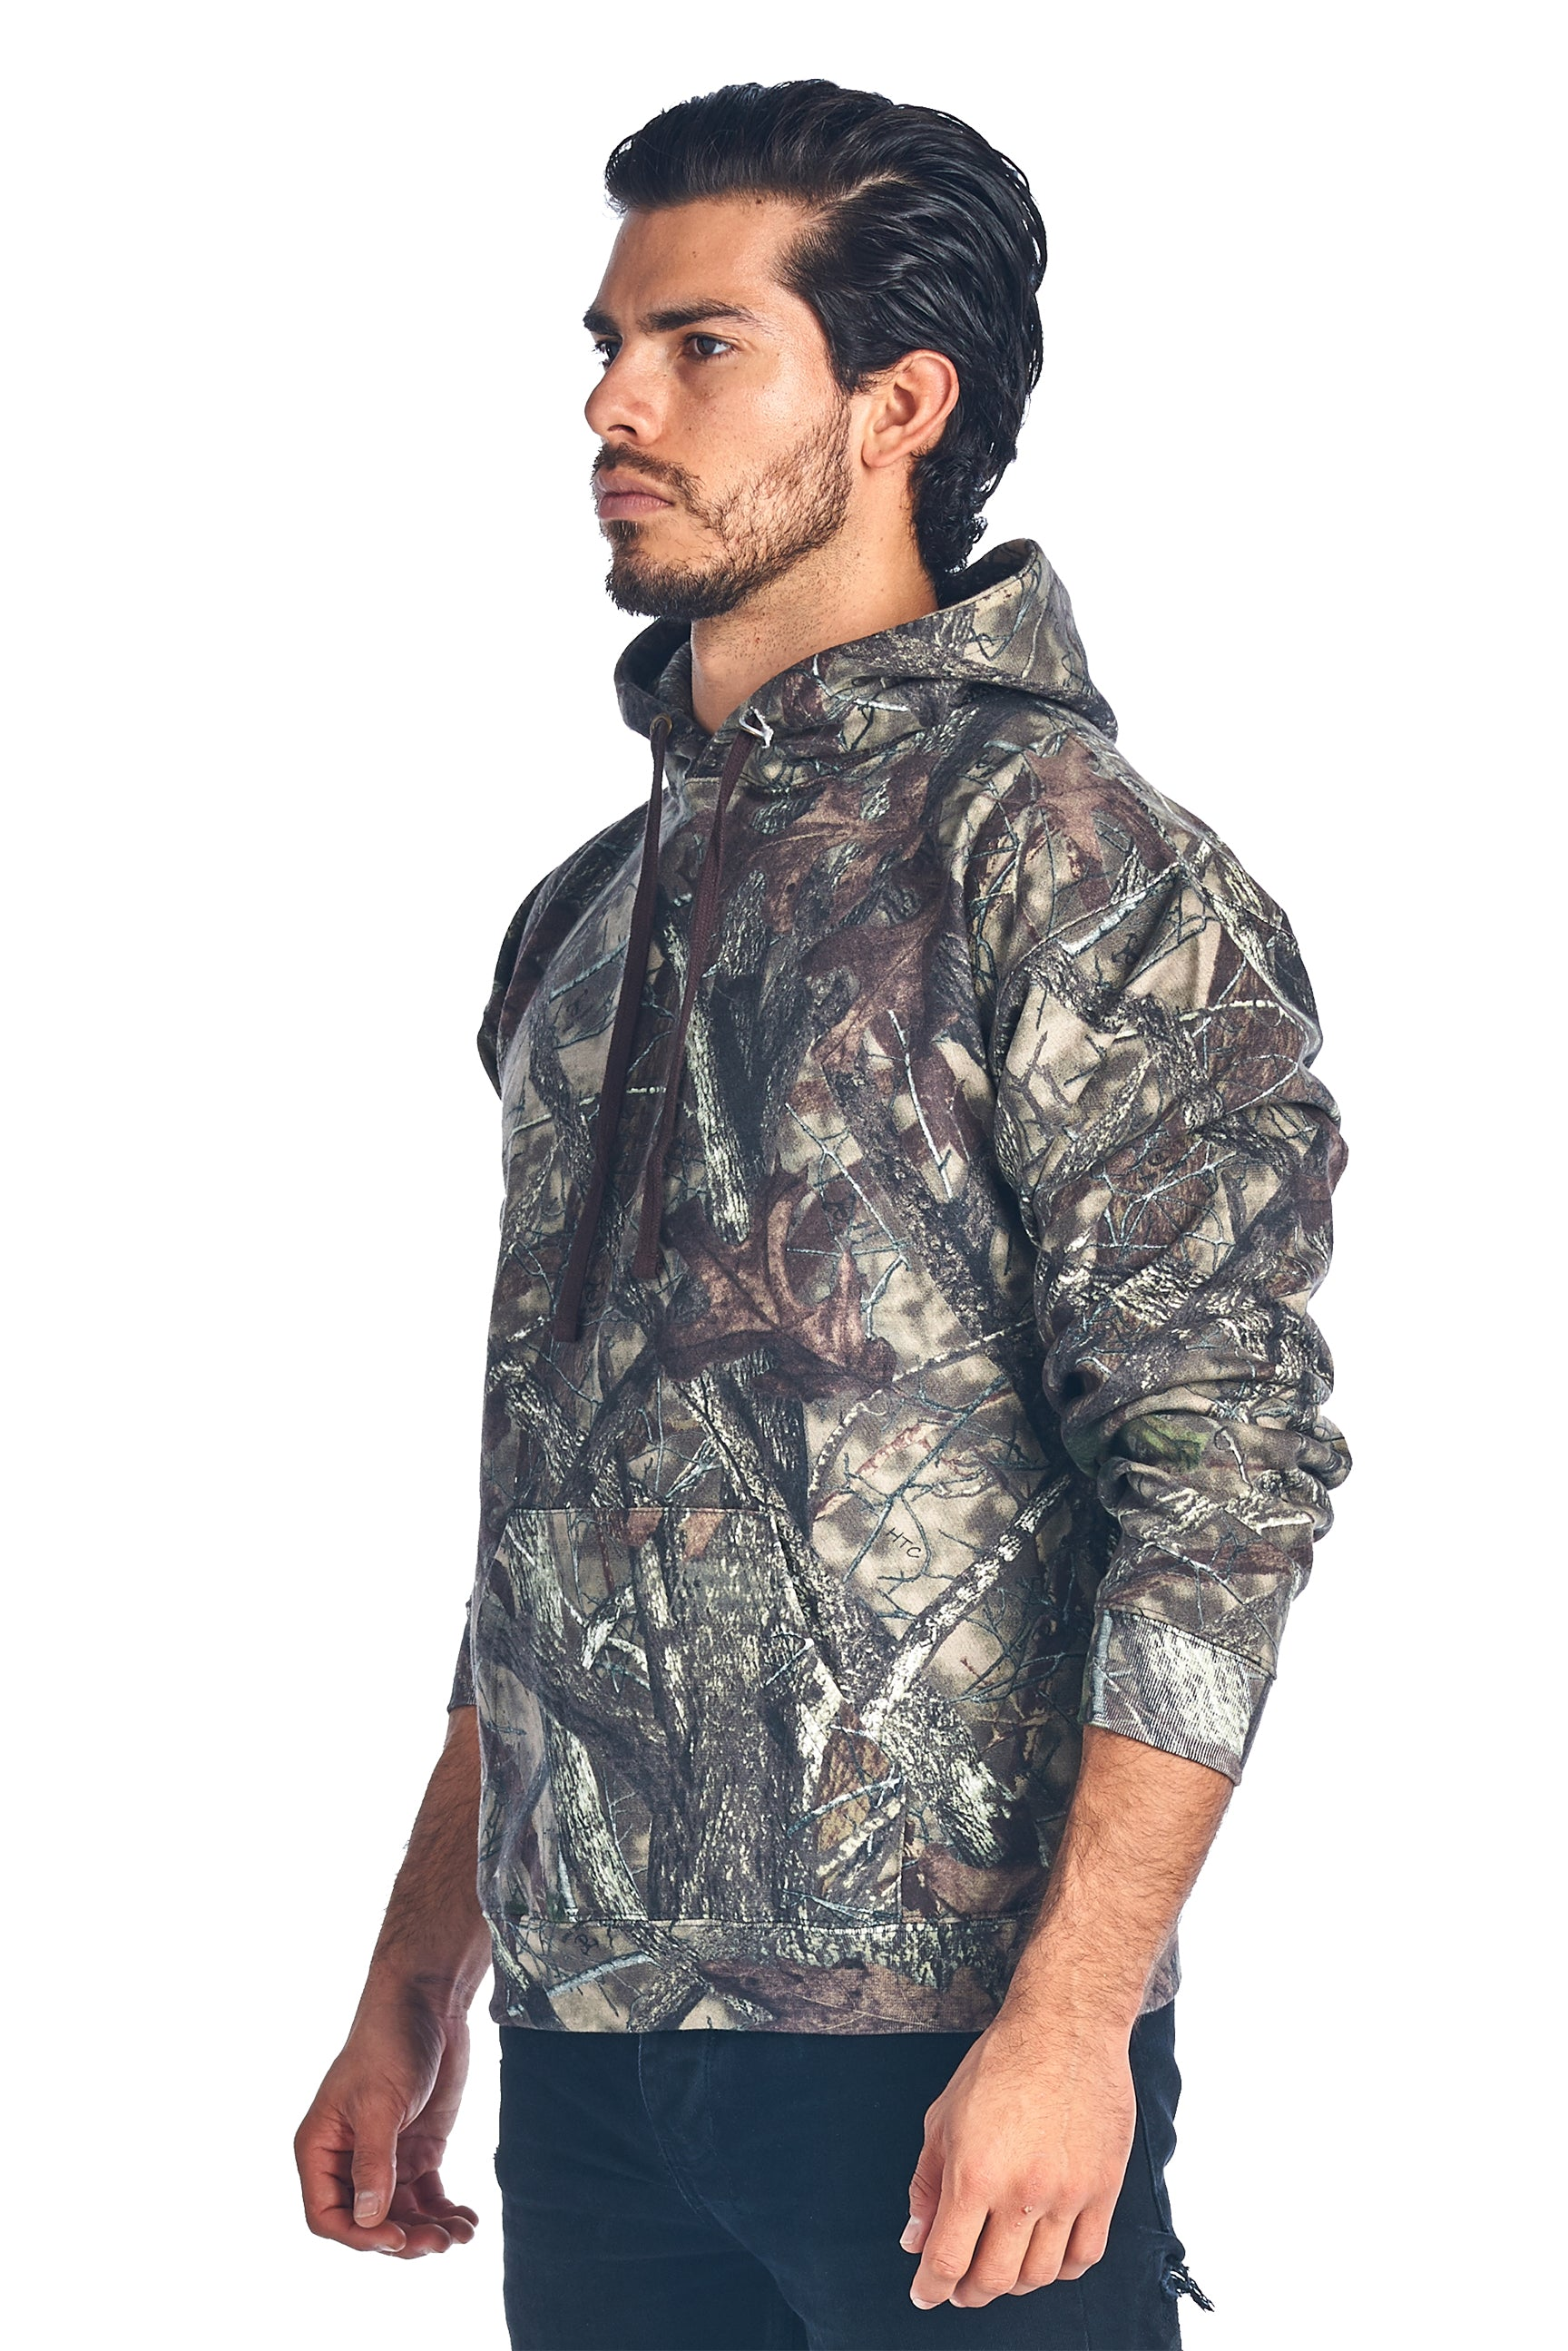 9bd5c74a15981 GREEN; Camo Hunting Hoodie Sweatshirt Sizes S-5XL Camouflage Authentic True  Timber ...